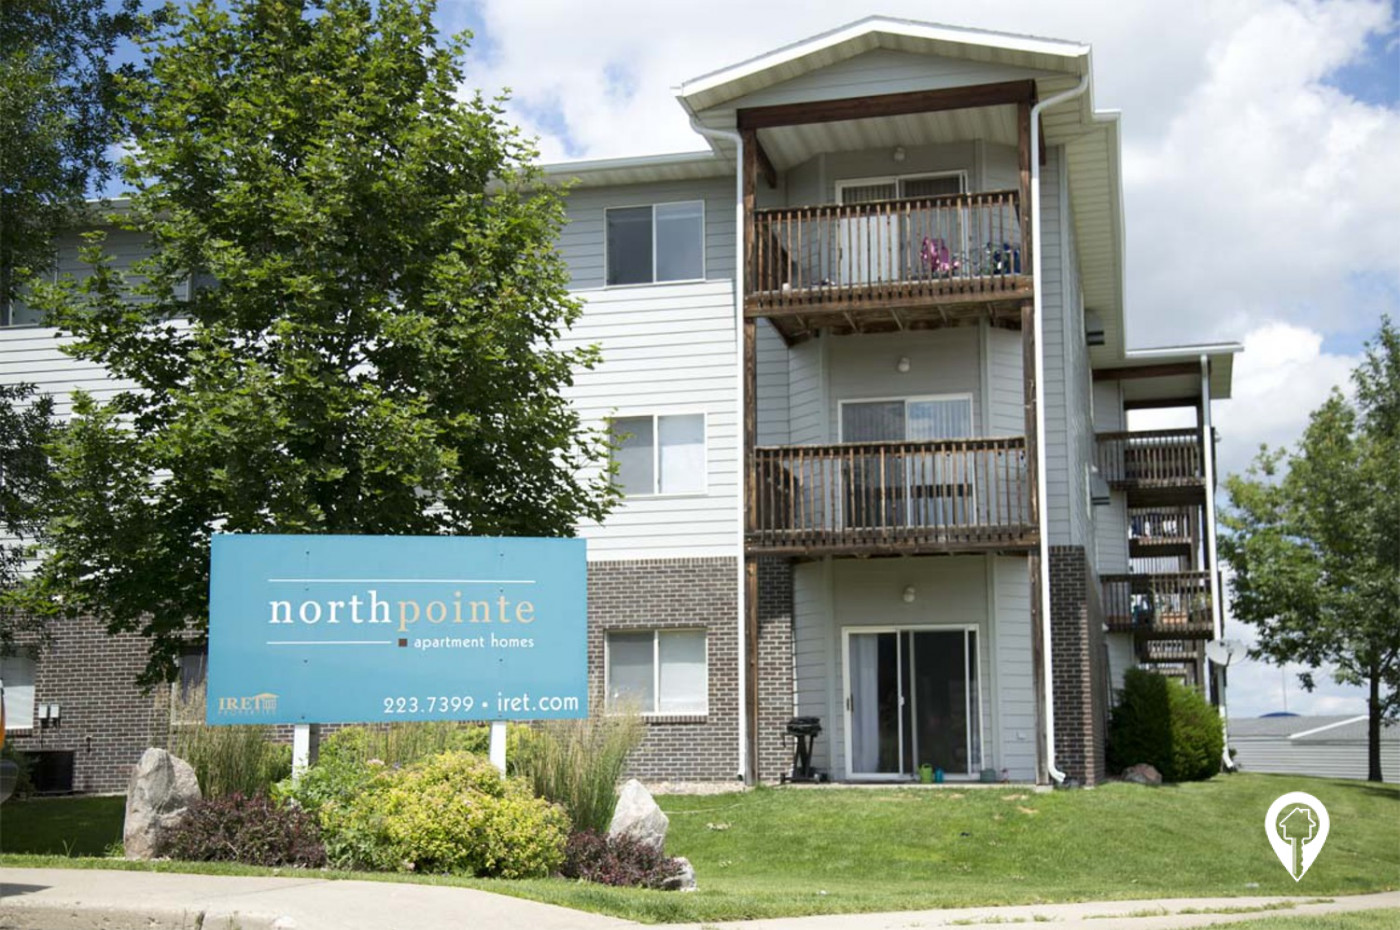 North Pointe Apartment Homes